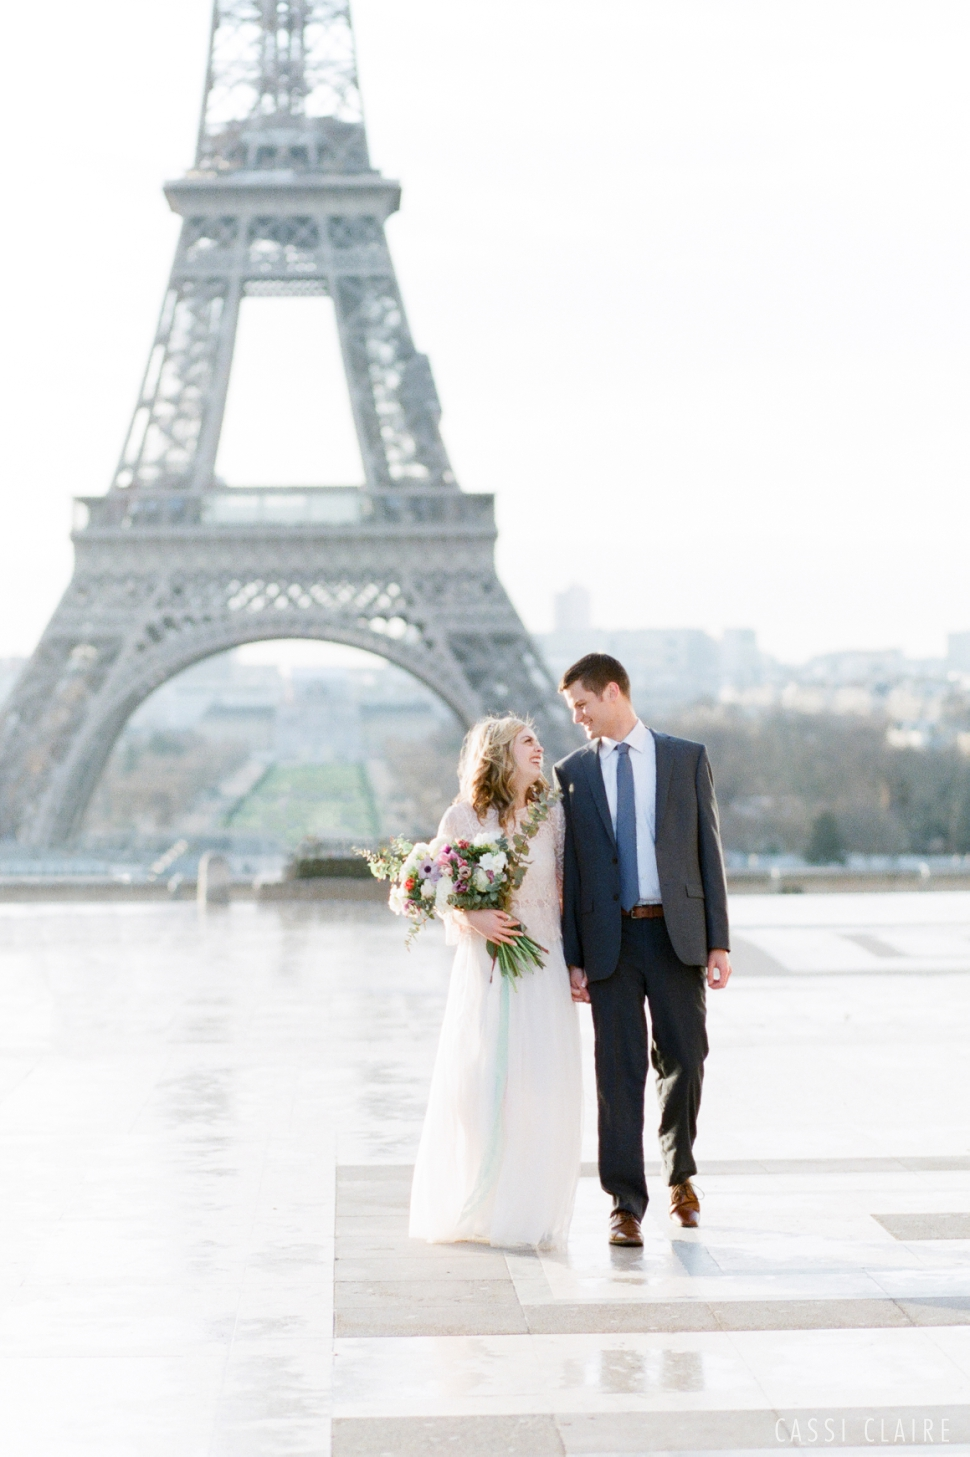 Paris-France-Wedding_CassiClaire_07.jpg